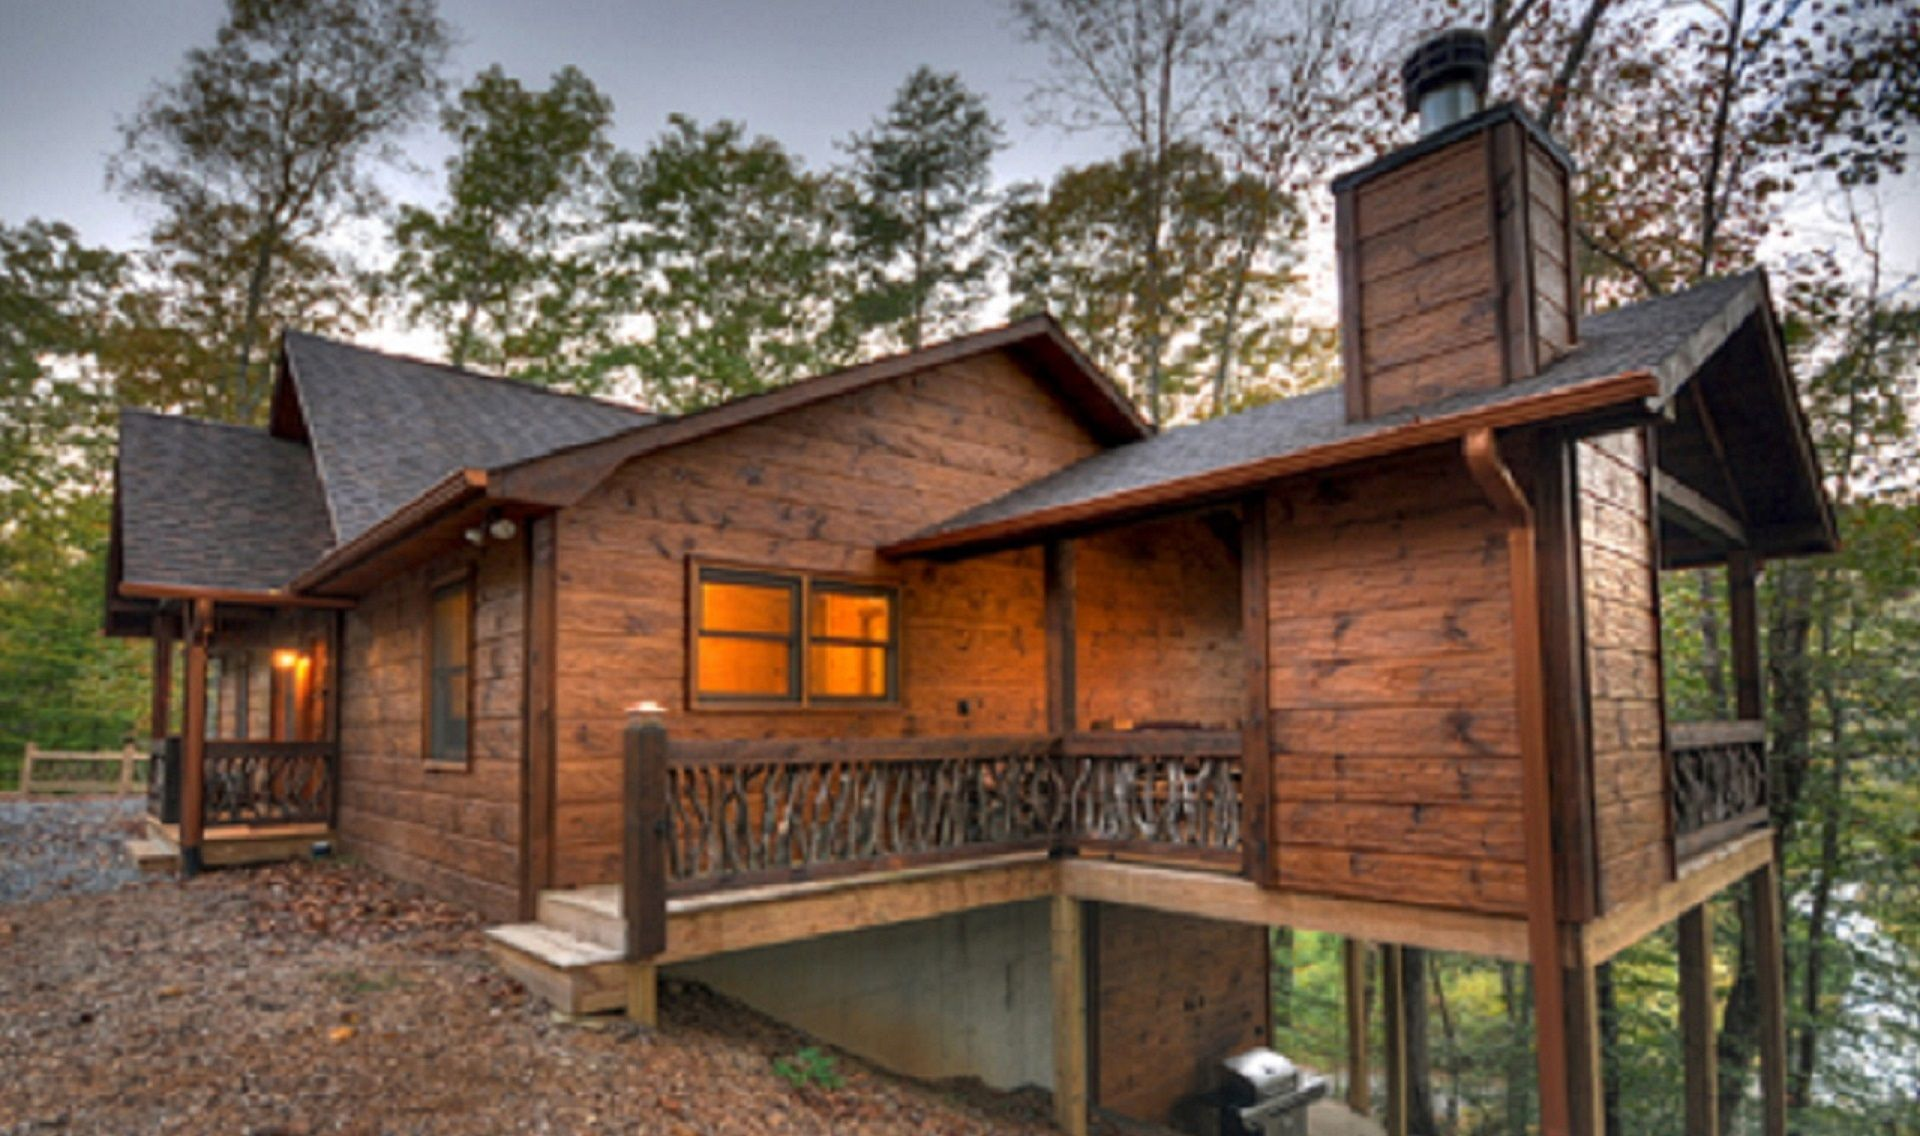 list affordable view tye for cabin overlook rental a in larger asp vacation click river georgia rentals cabins by north overnight